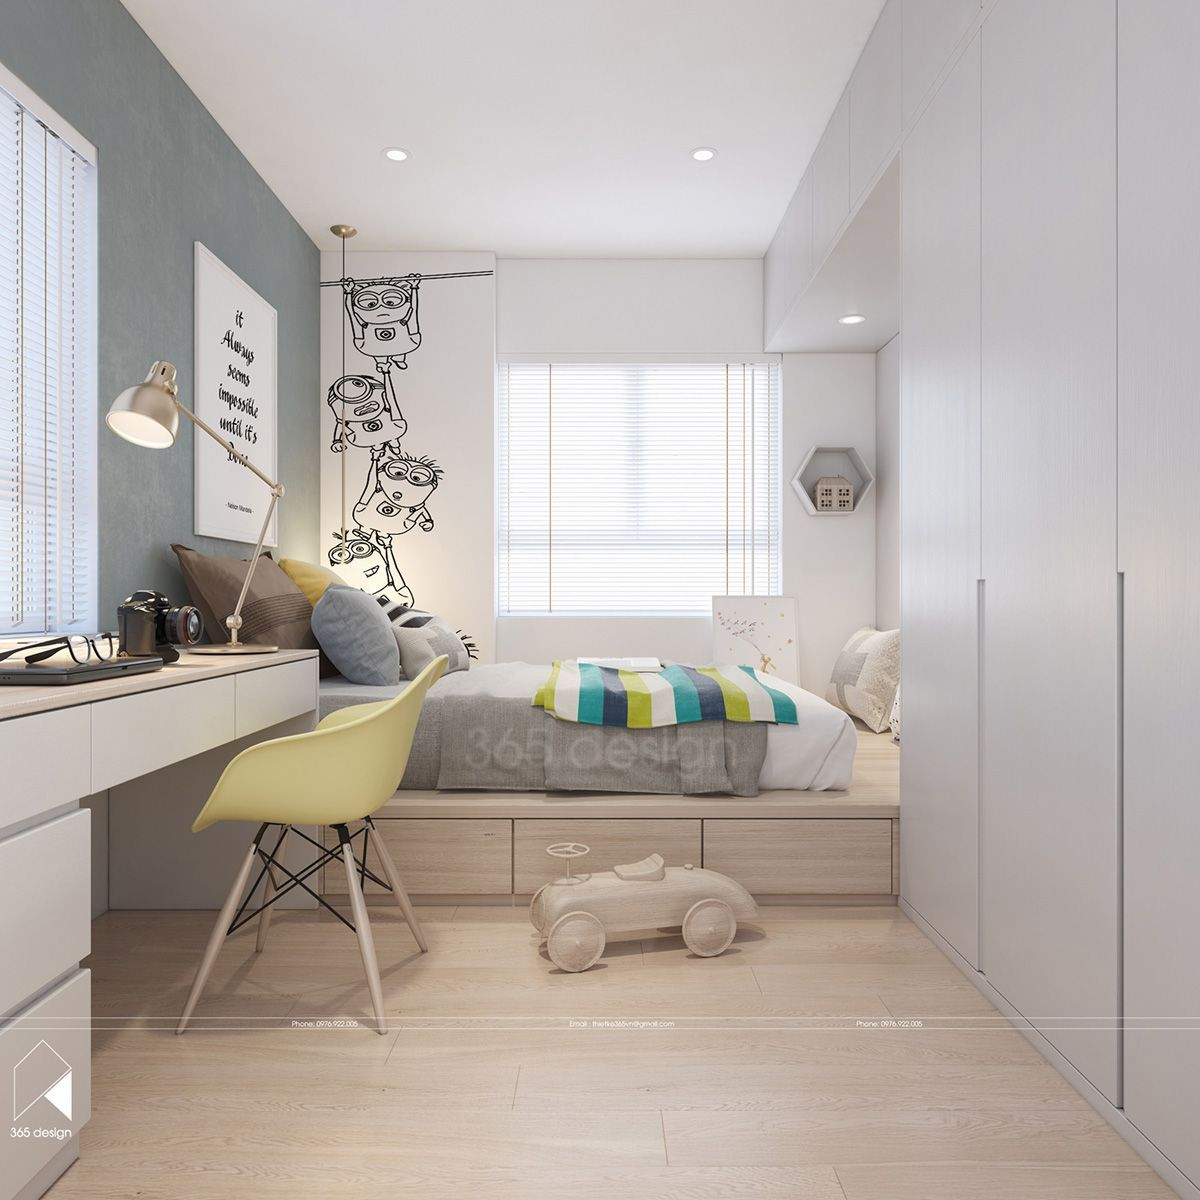 100 Cute Modern Children Bedroom Ideas 10 Home Of Pondo Home regarding 13 Some of the Coolest Concepts of How to Upgrade Modern Toddler Bedroom Ideas